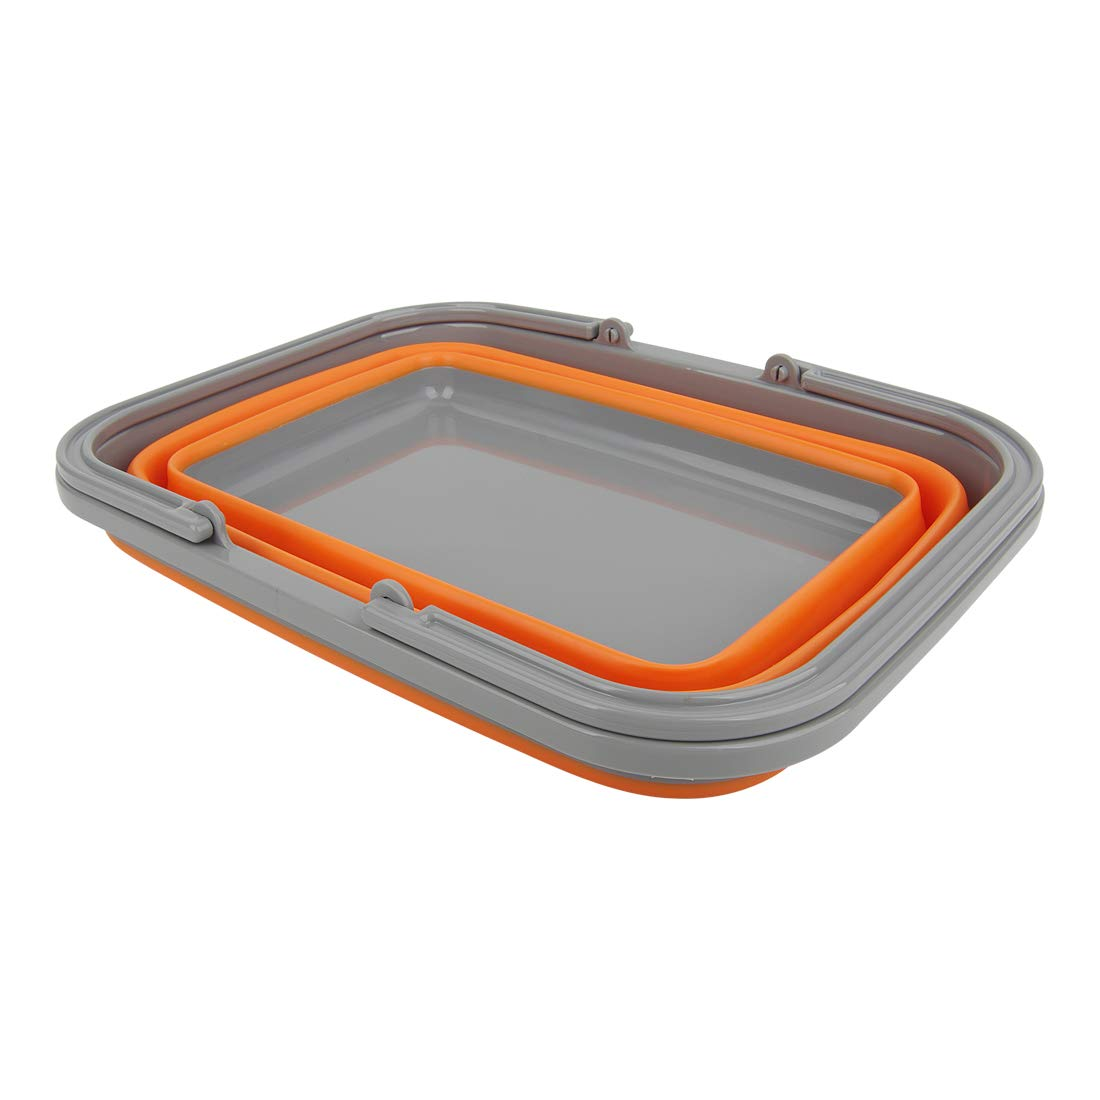 Tiawudi 2 Pack Collapsible Sink with 2.25 Gal / 8.5L Each Wash Basin for Washing Dishes, Camping, Hiking and Home